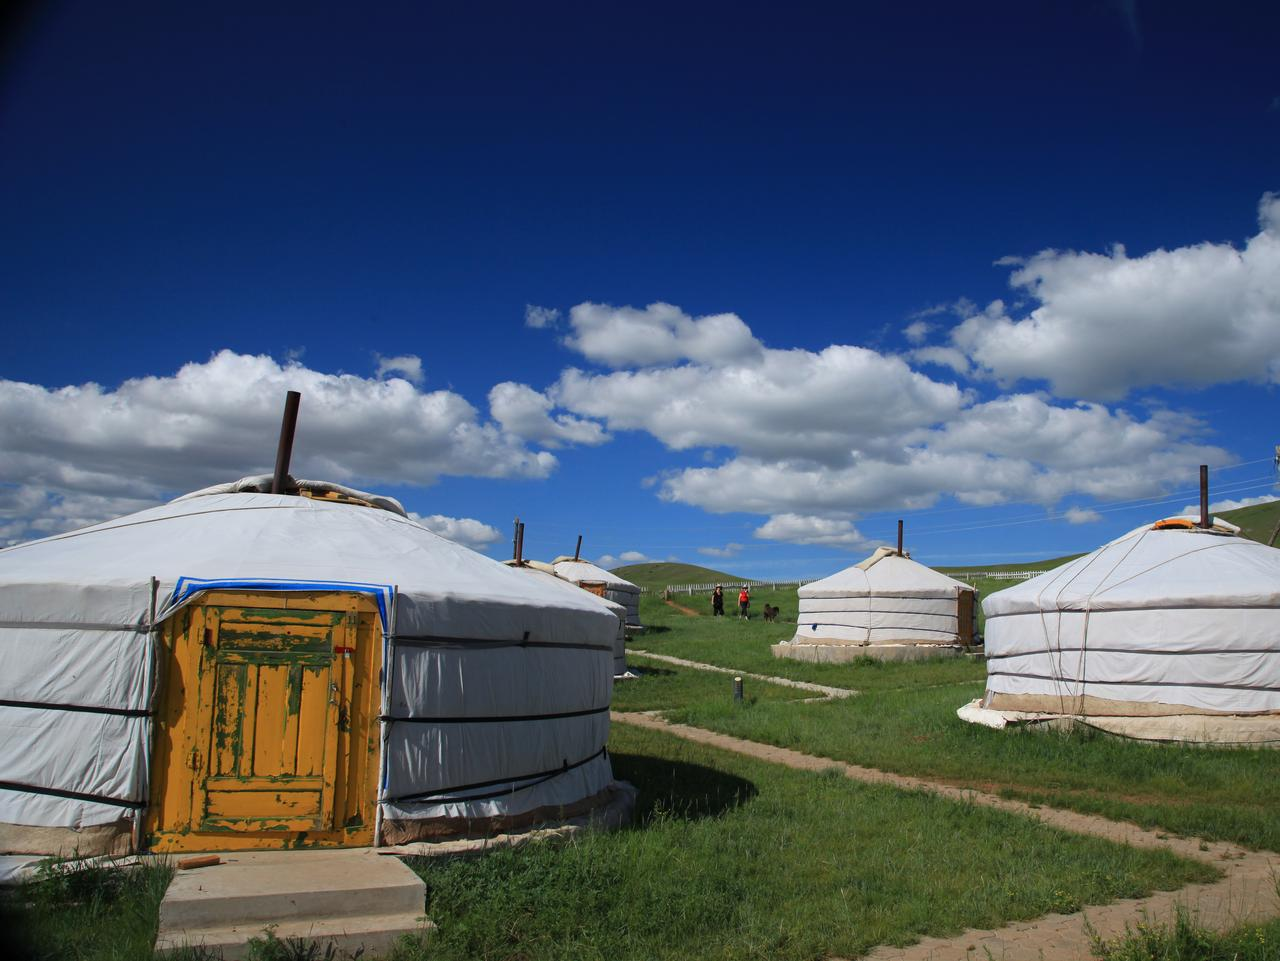 A stay in a ger is a must-do for tourists in Mongolia.